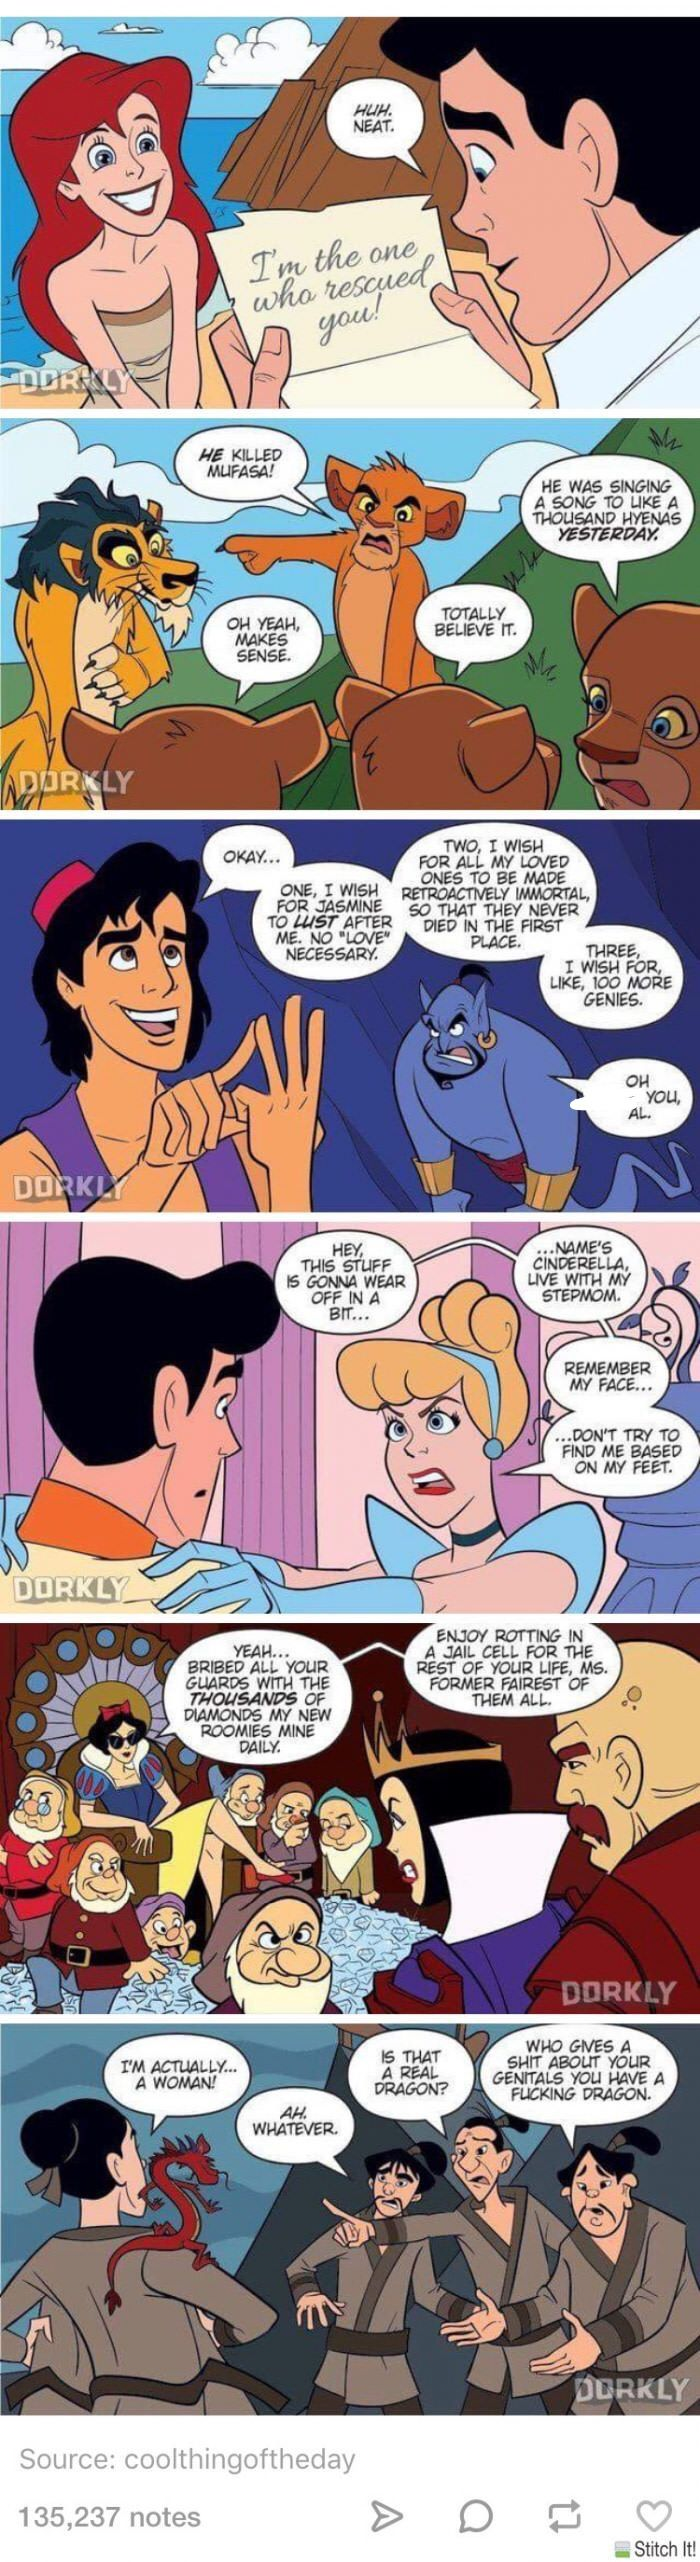 If Disney movies were in real life lol